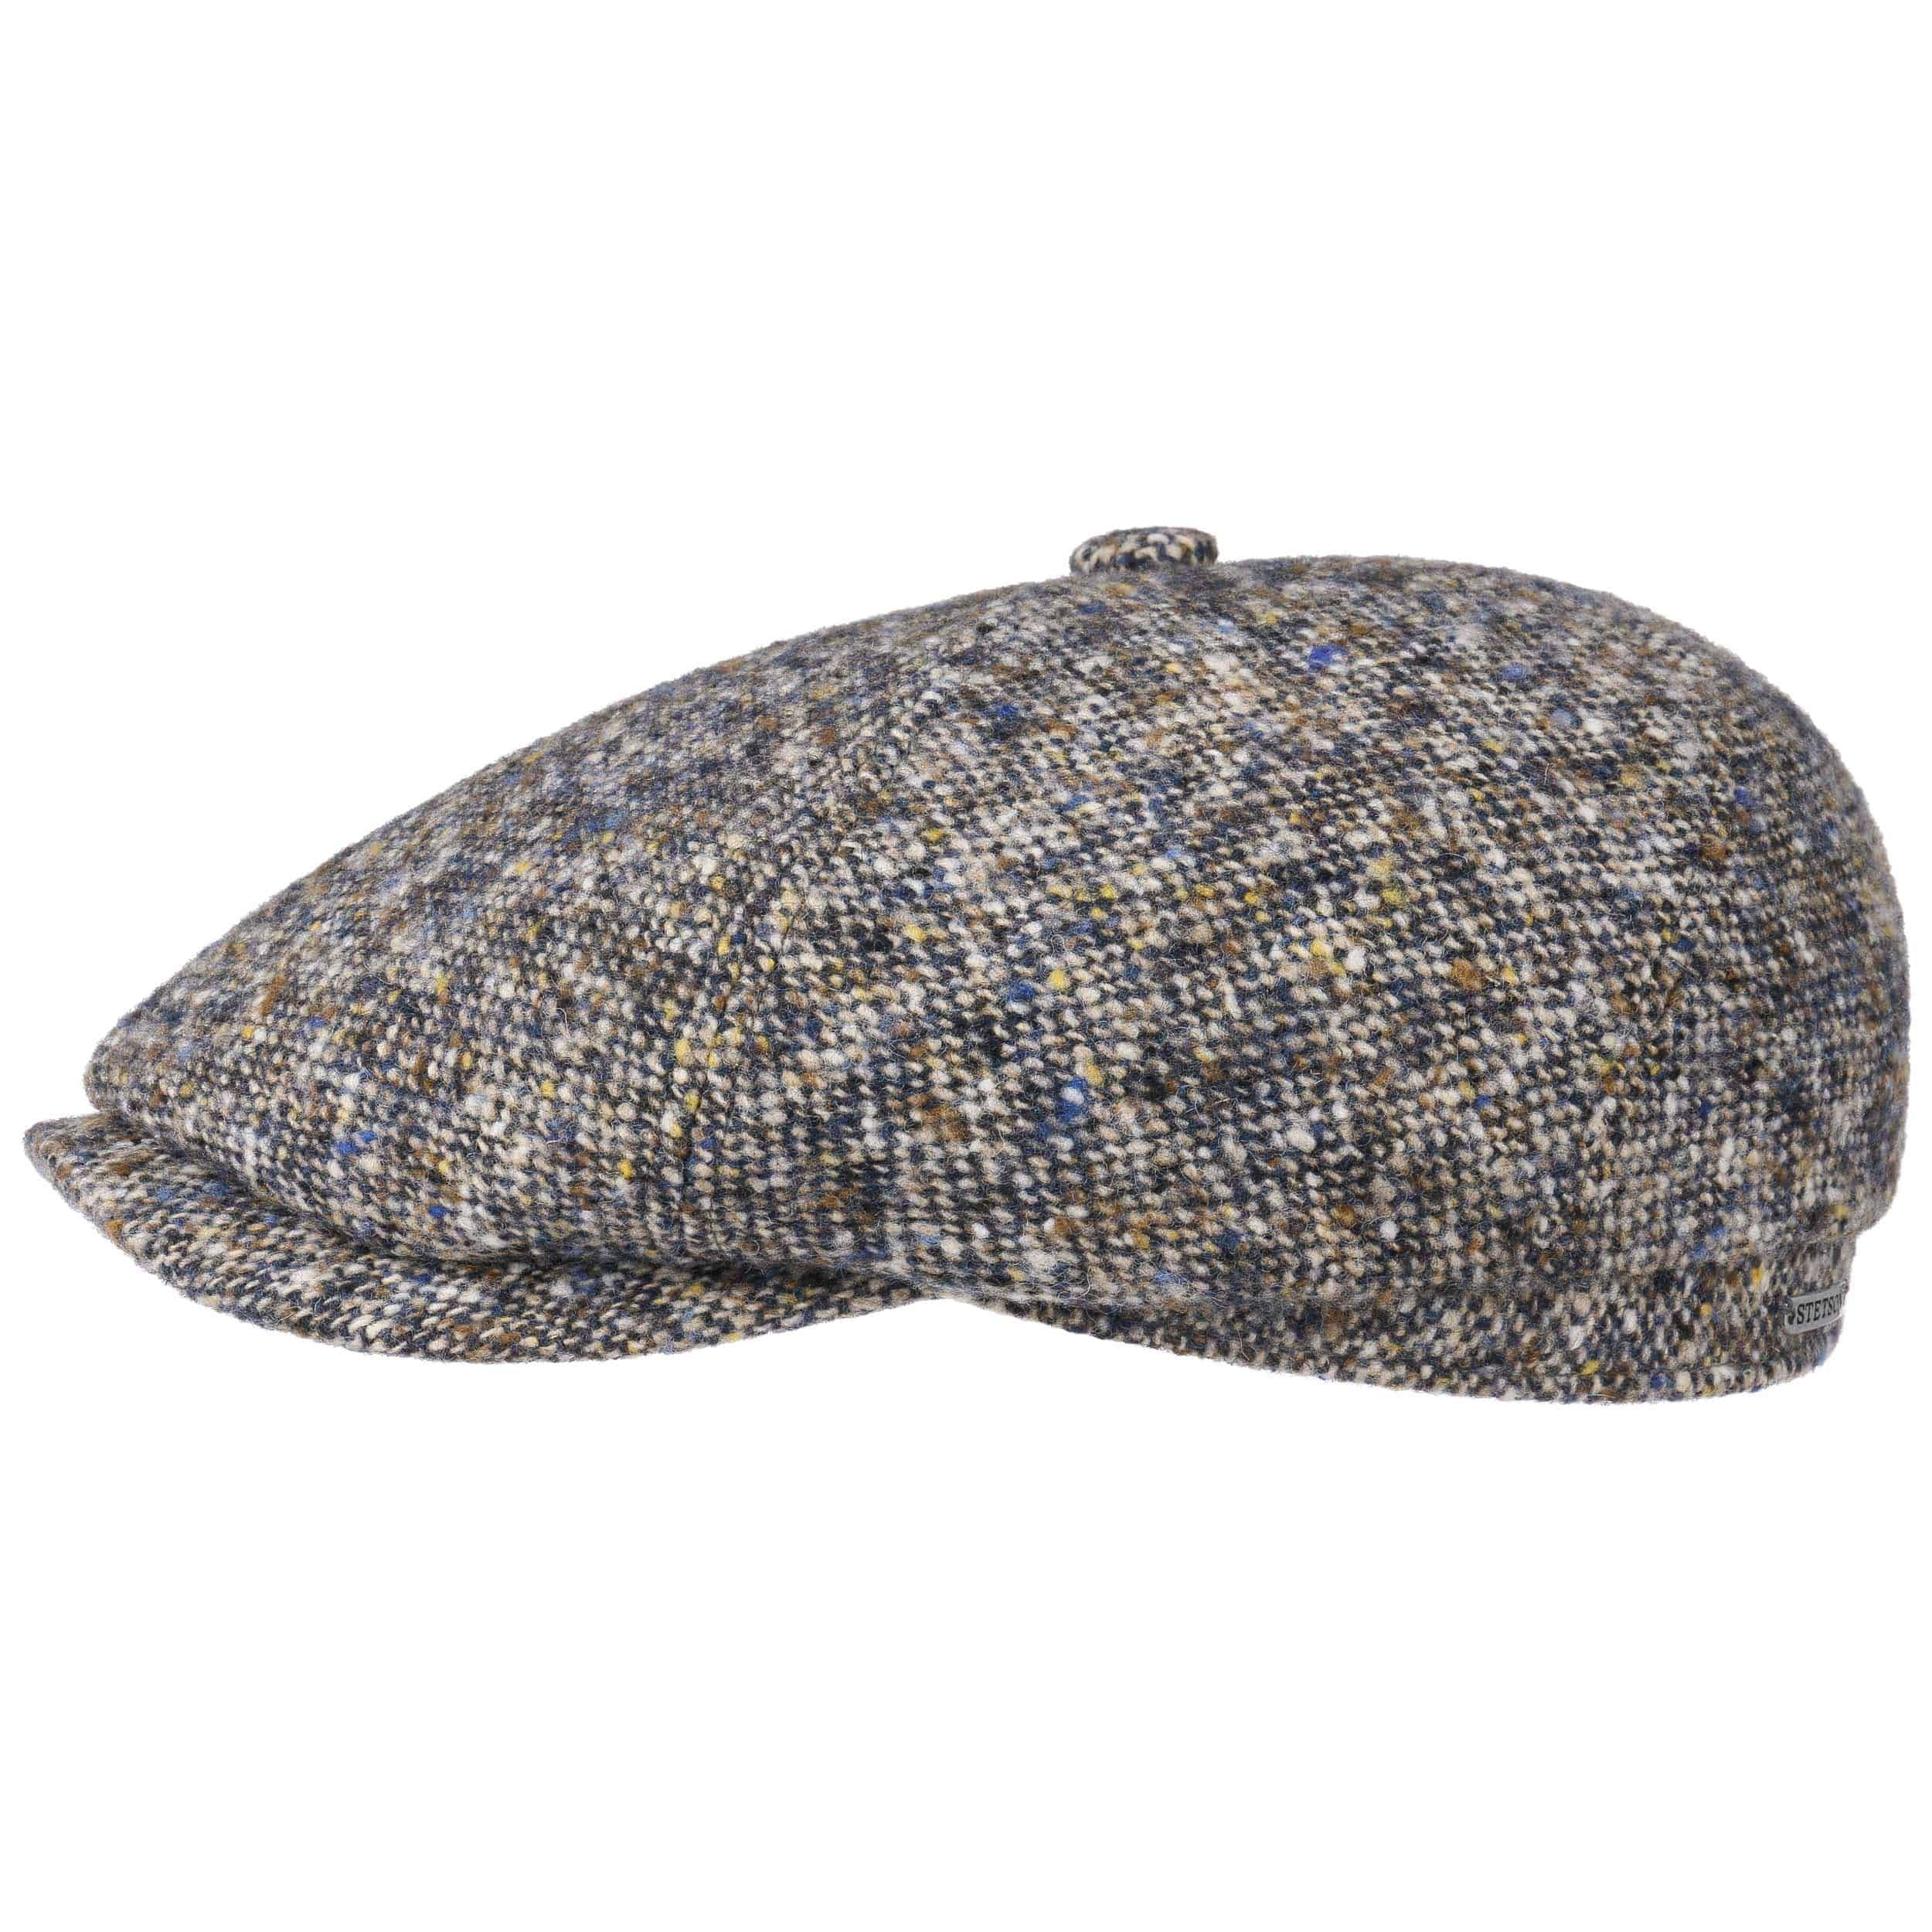 Brooklin Donegal Flat Cap beige